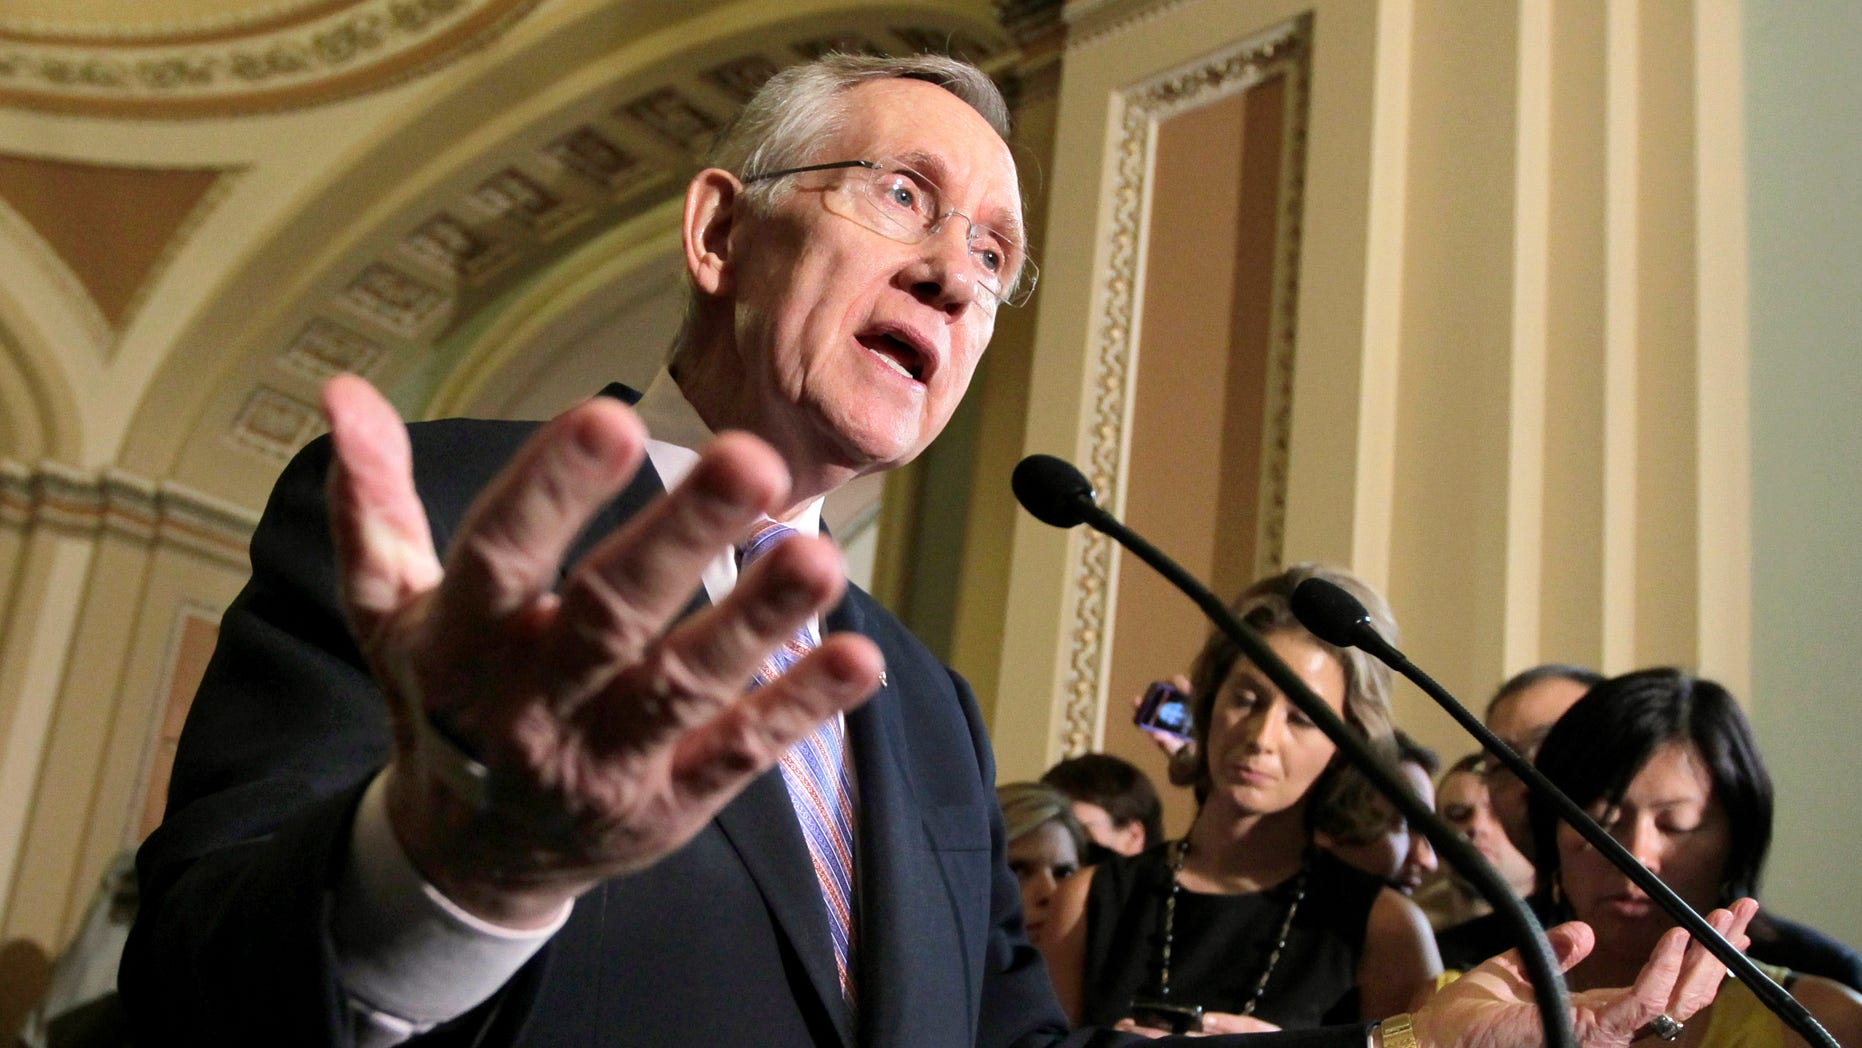 Senate Majority Leader Harry Reid of Nev. speaks with reporters about the conflicting plans to deal with the debt crisis, Tuesday, July 26, 2011, on the Hill Capitol in Washington.